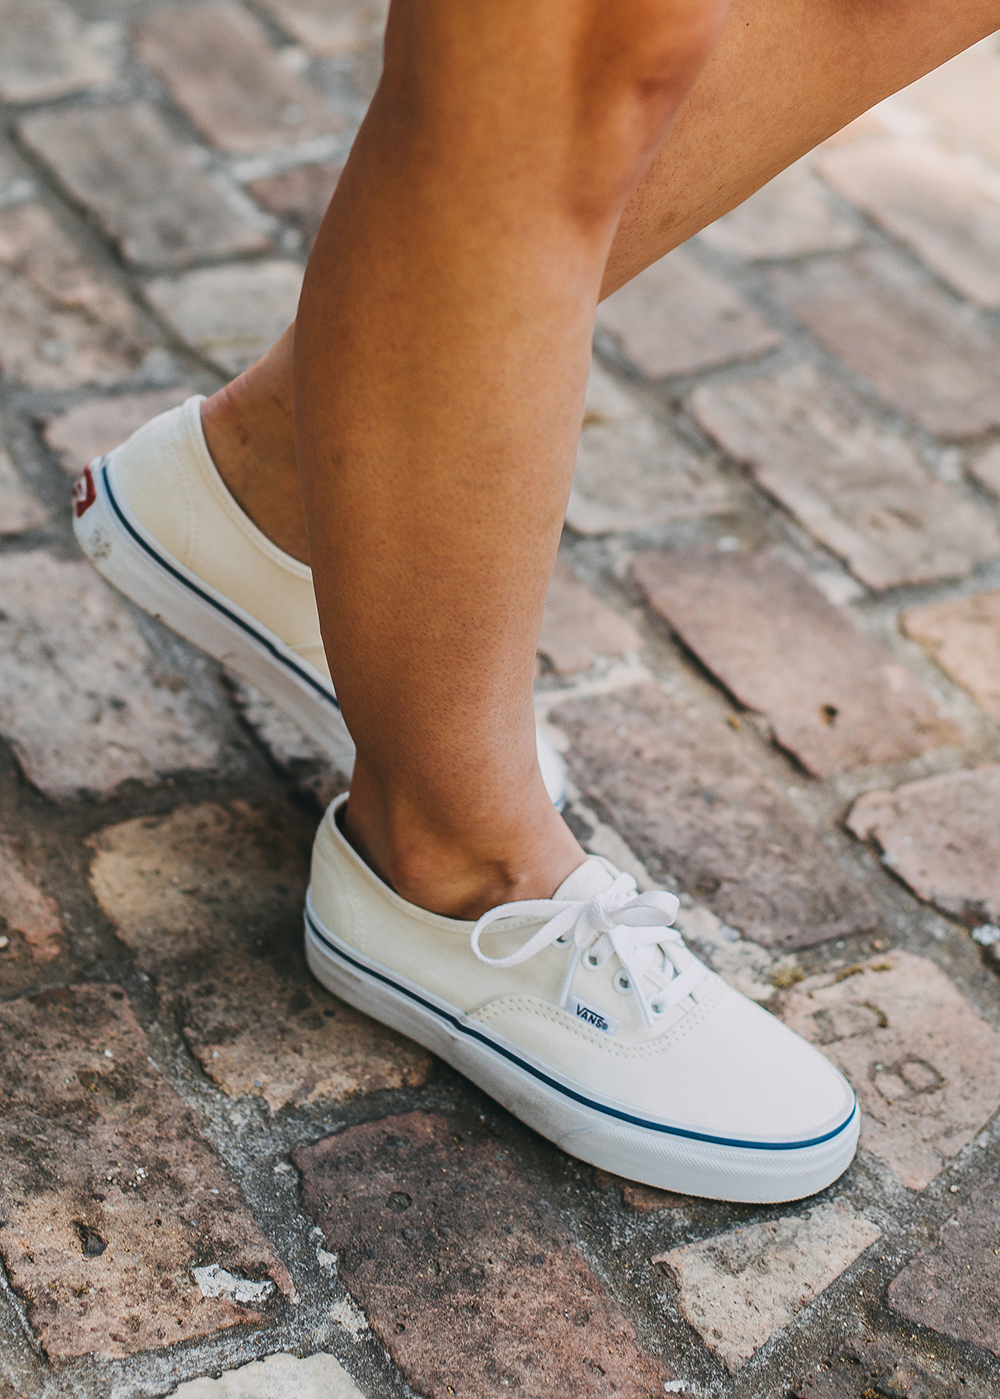 livvyland-blog-olivia-watson-austin-texas-fashion-style-vans-classic-sneakers